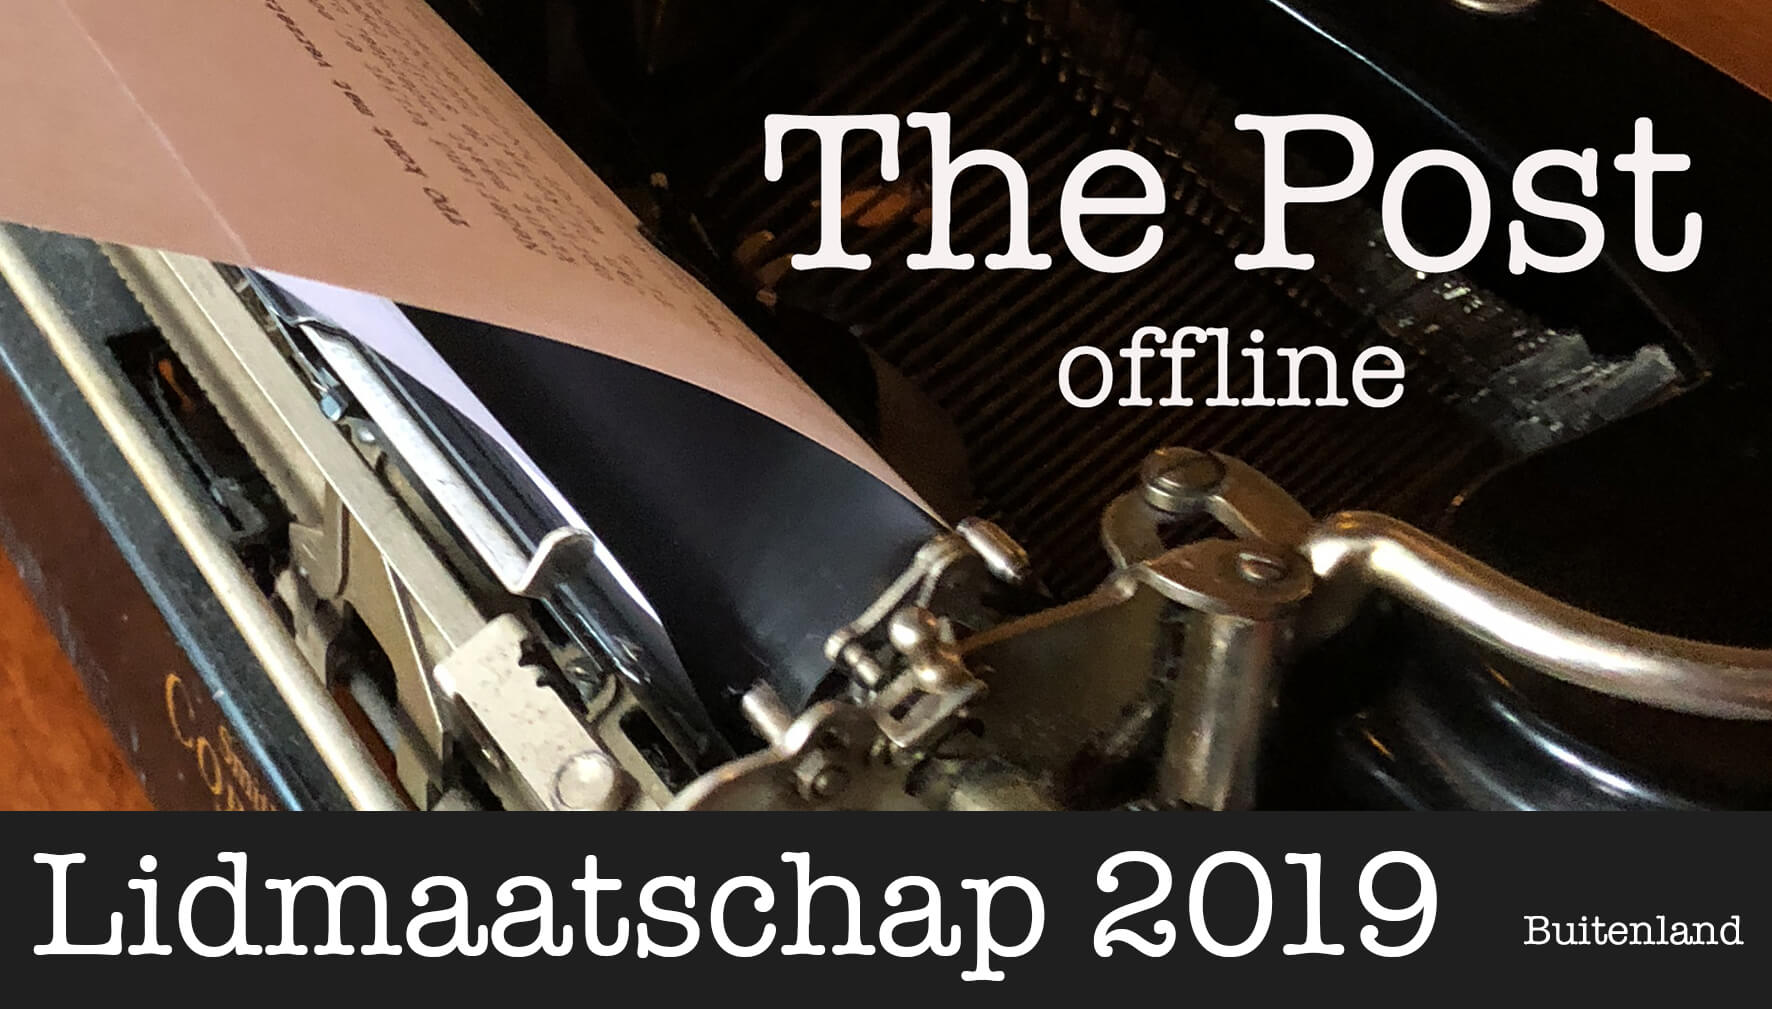 Lidmaatschap The Post Offline Buitenland 2019